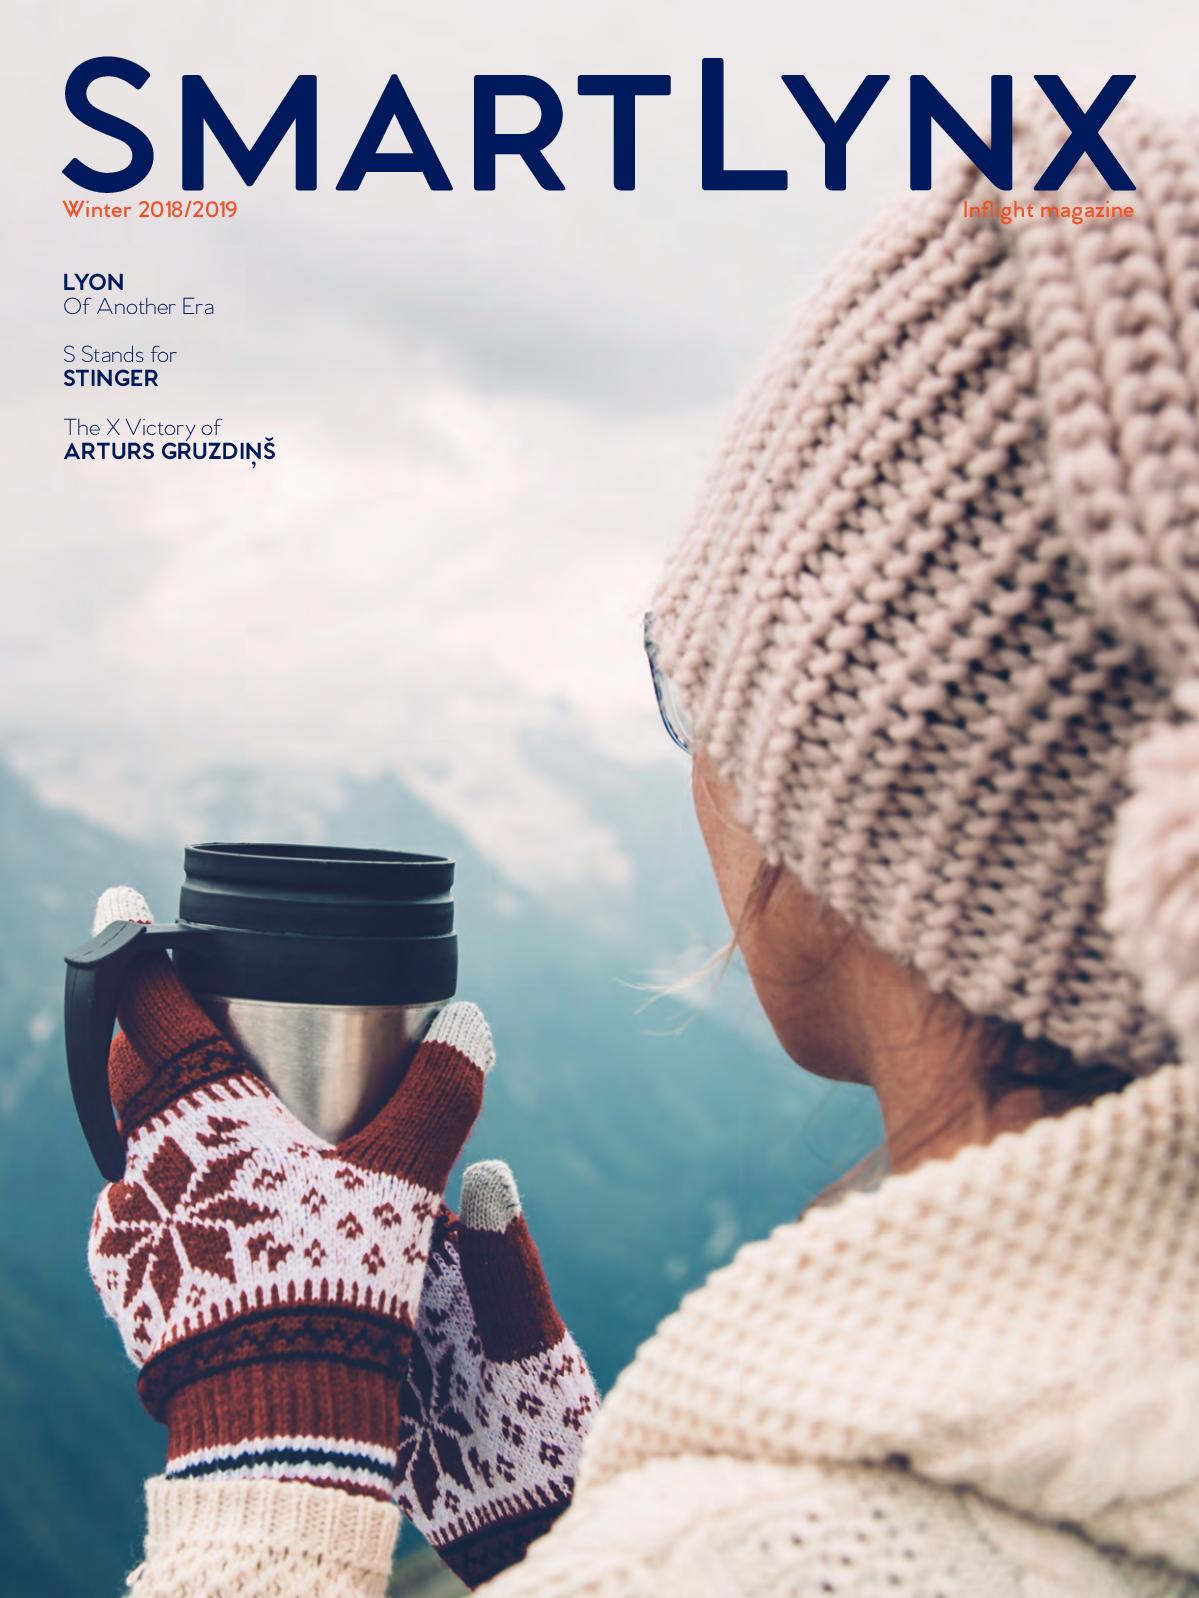 Calaméo - SmartLynx in-flight magazine Winter 2018/2019